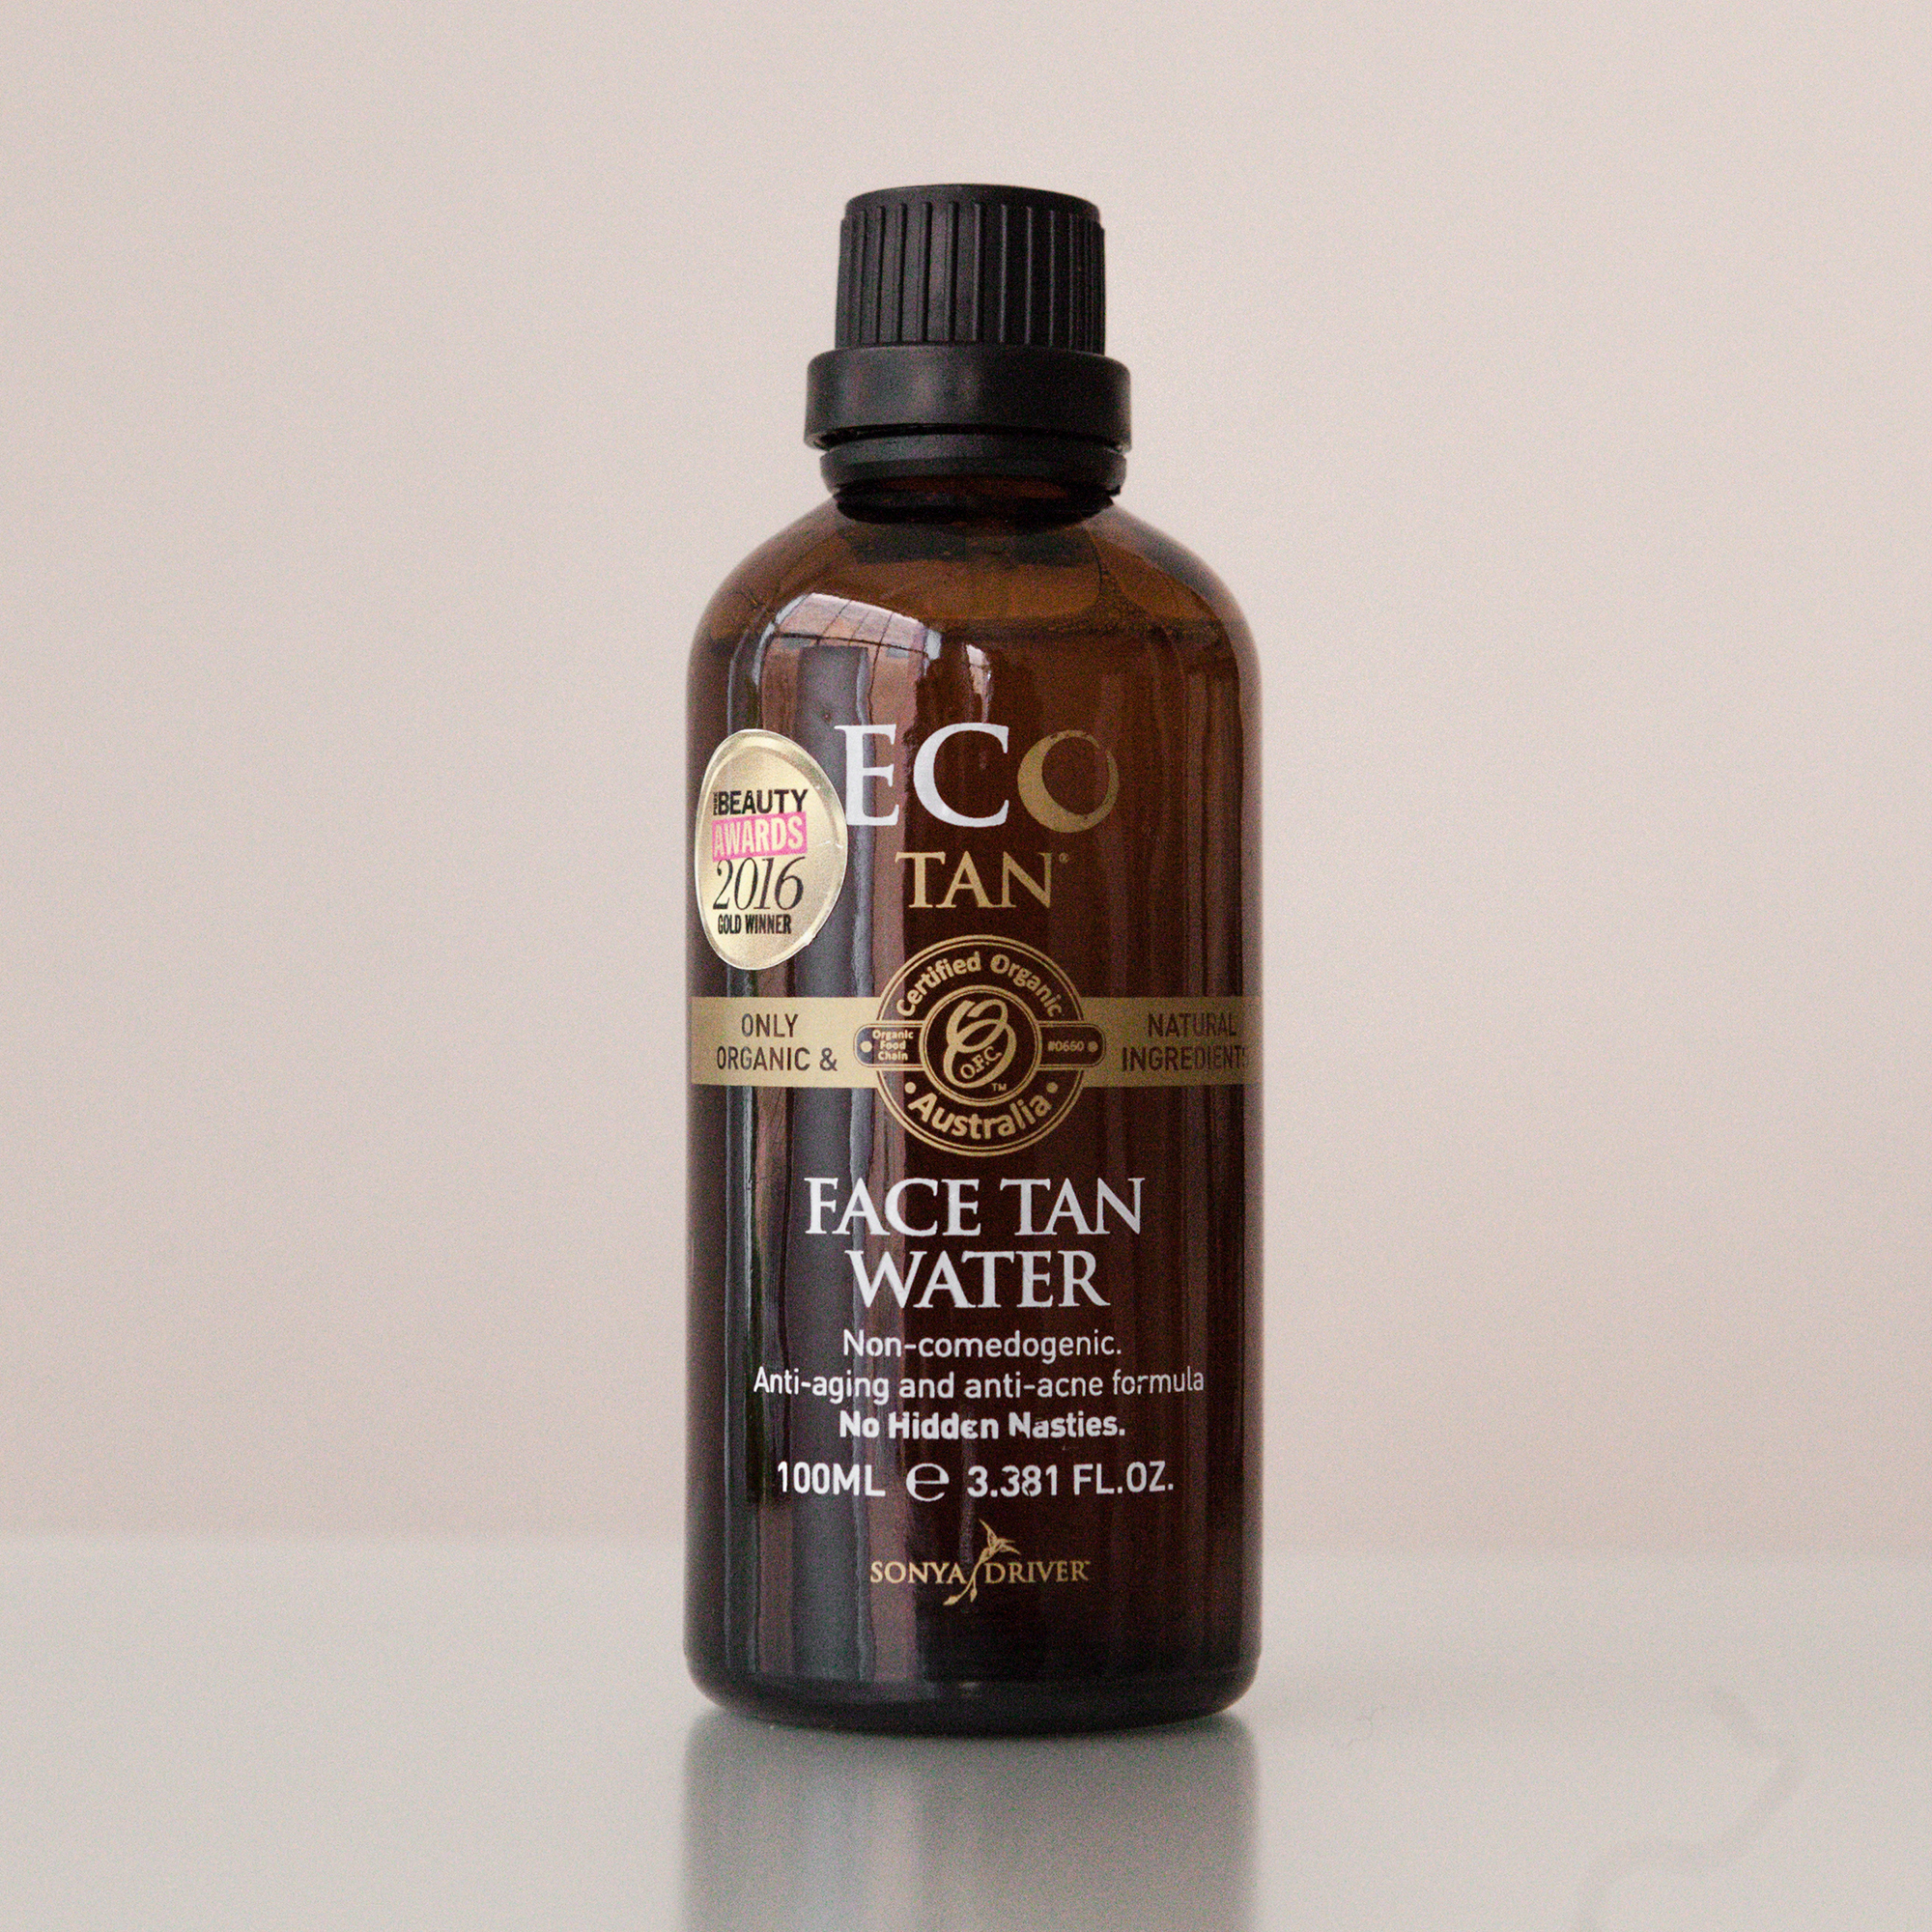 Eco Tan Face Tan Water Review Noema